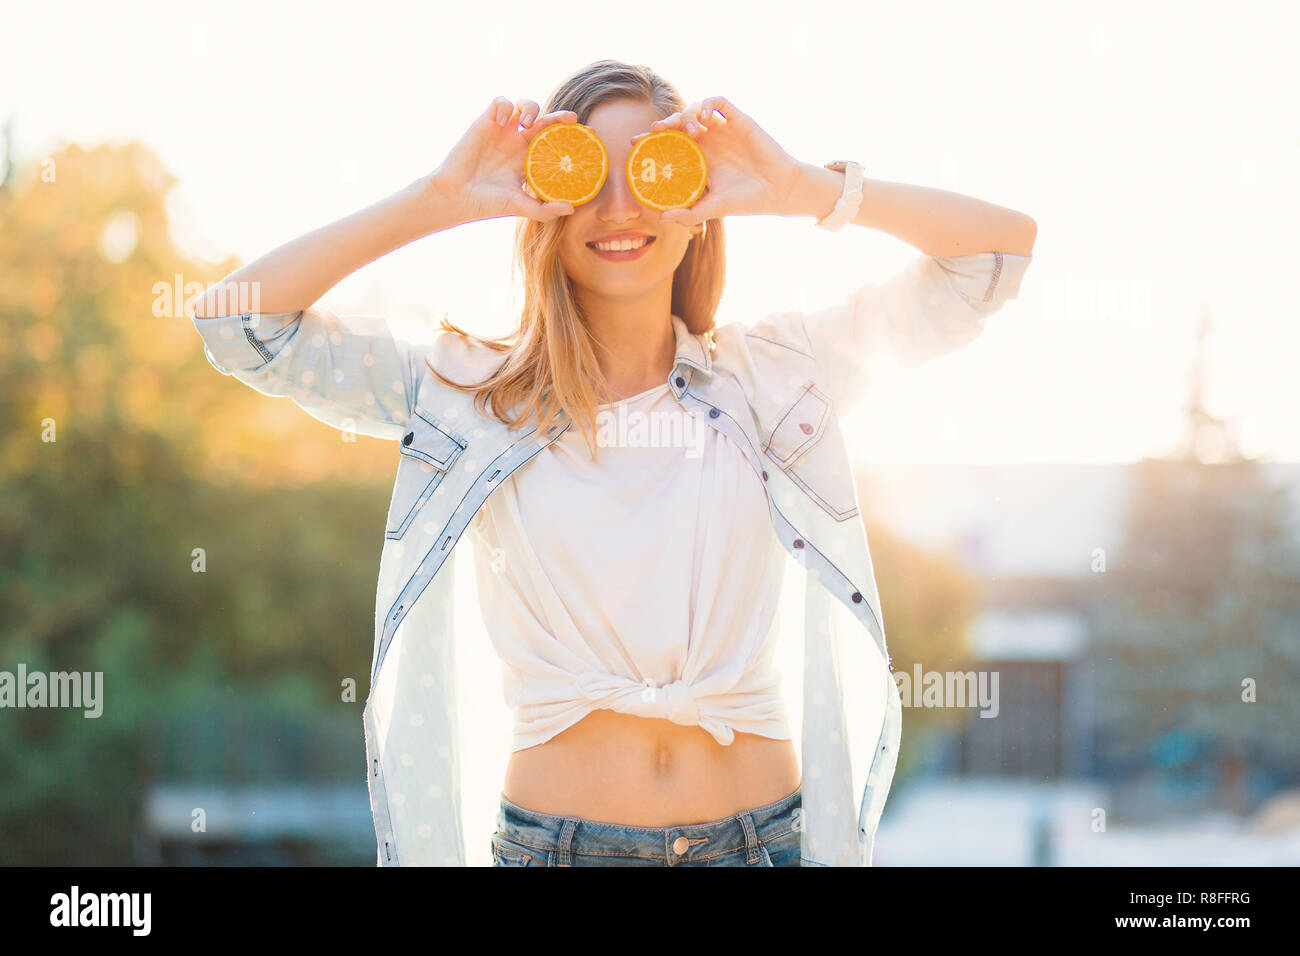 Carefree young beautiful girl using two halfs of oranges instead of glasses over her eyes, on a beautiful sunny day with sun rays in the background - Stock Image